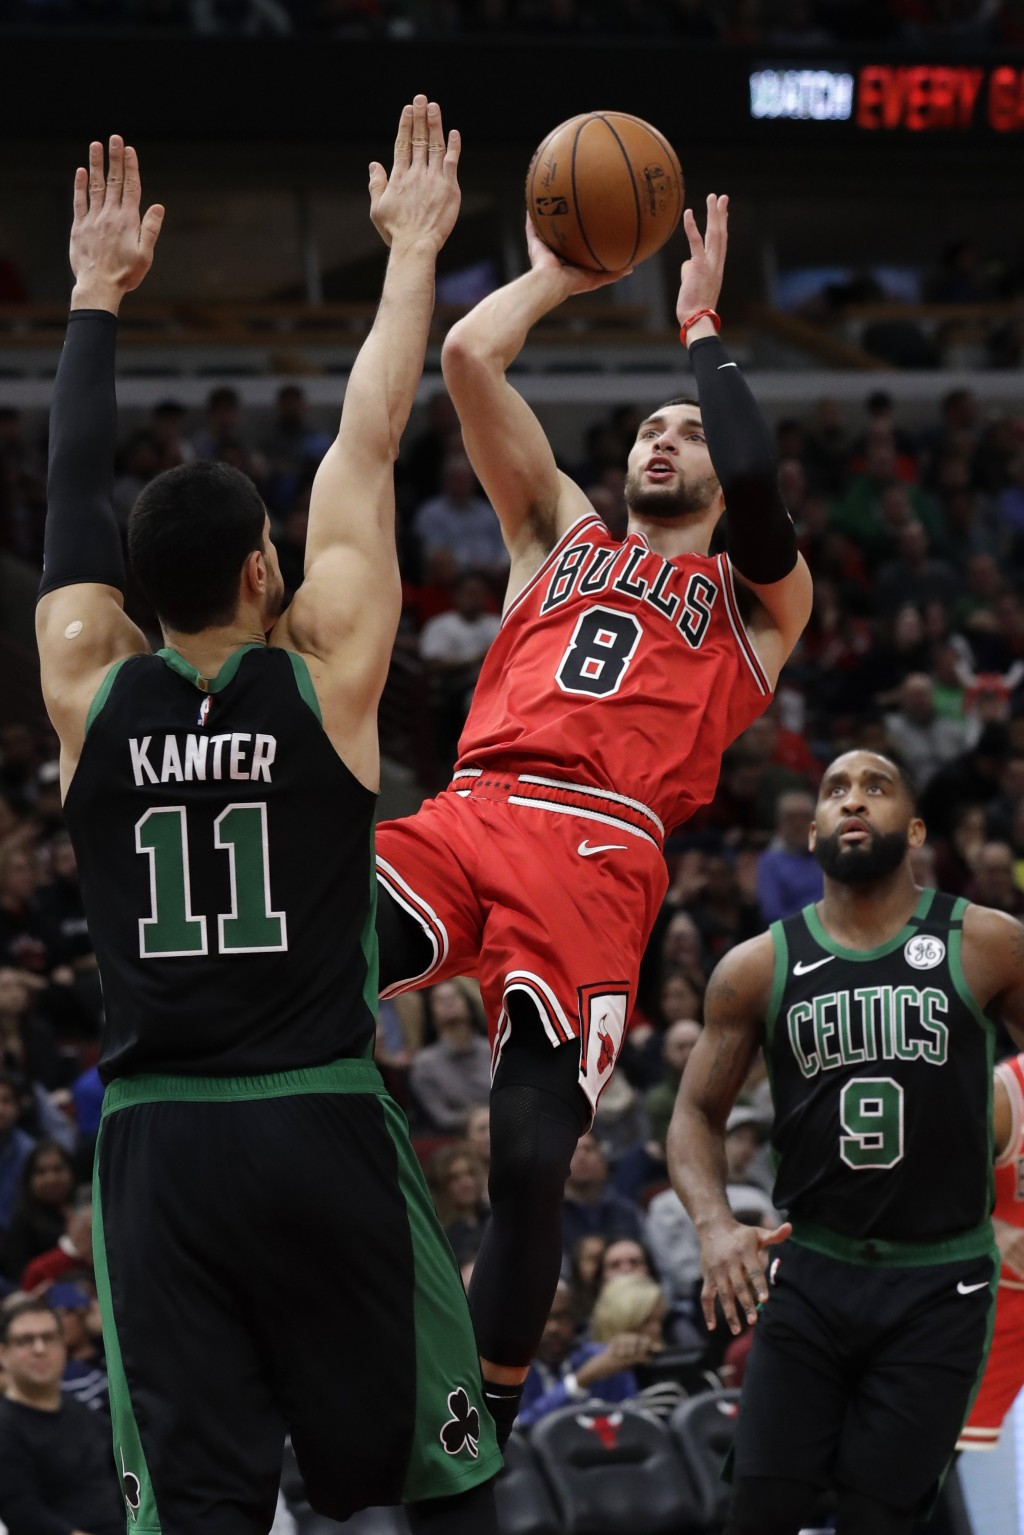 Chicago Bulls guard Zach LaVine (8) shoots over Boston Celtics center Enes Kanter (11) as guard Brad Wanamaker (9) watches during the first half of an...